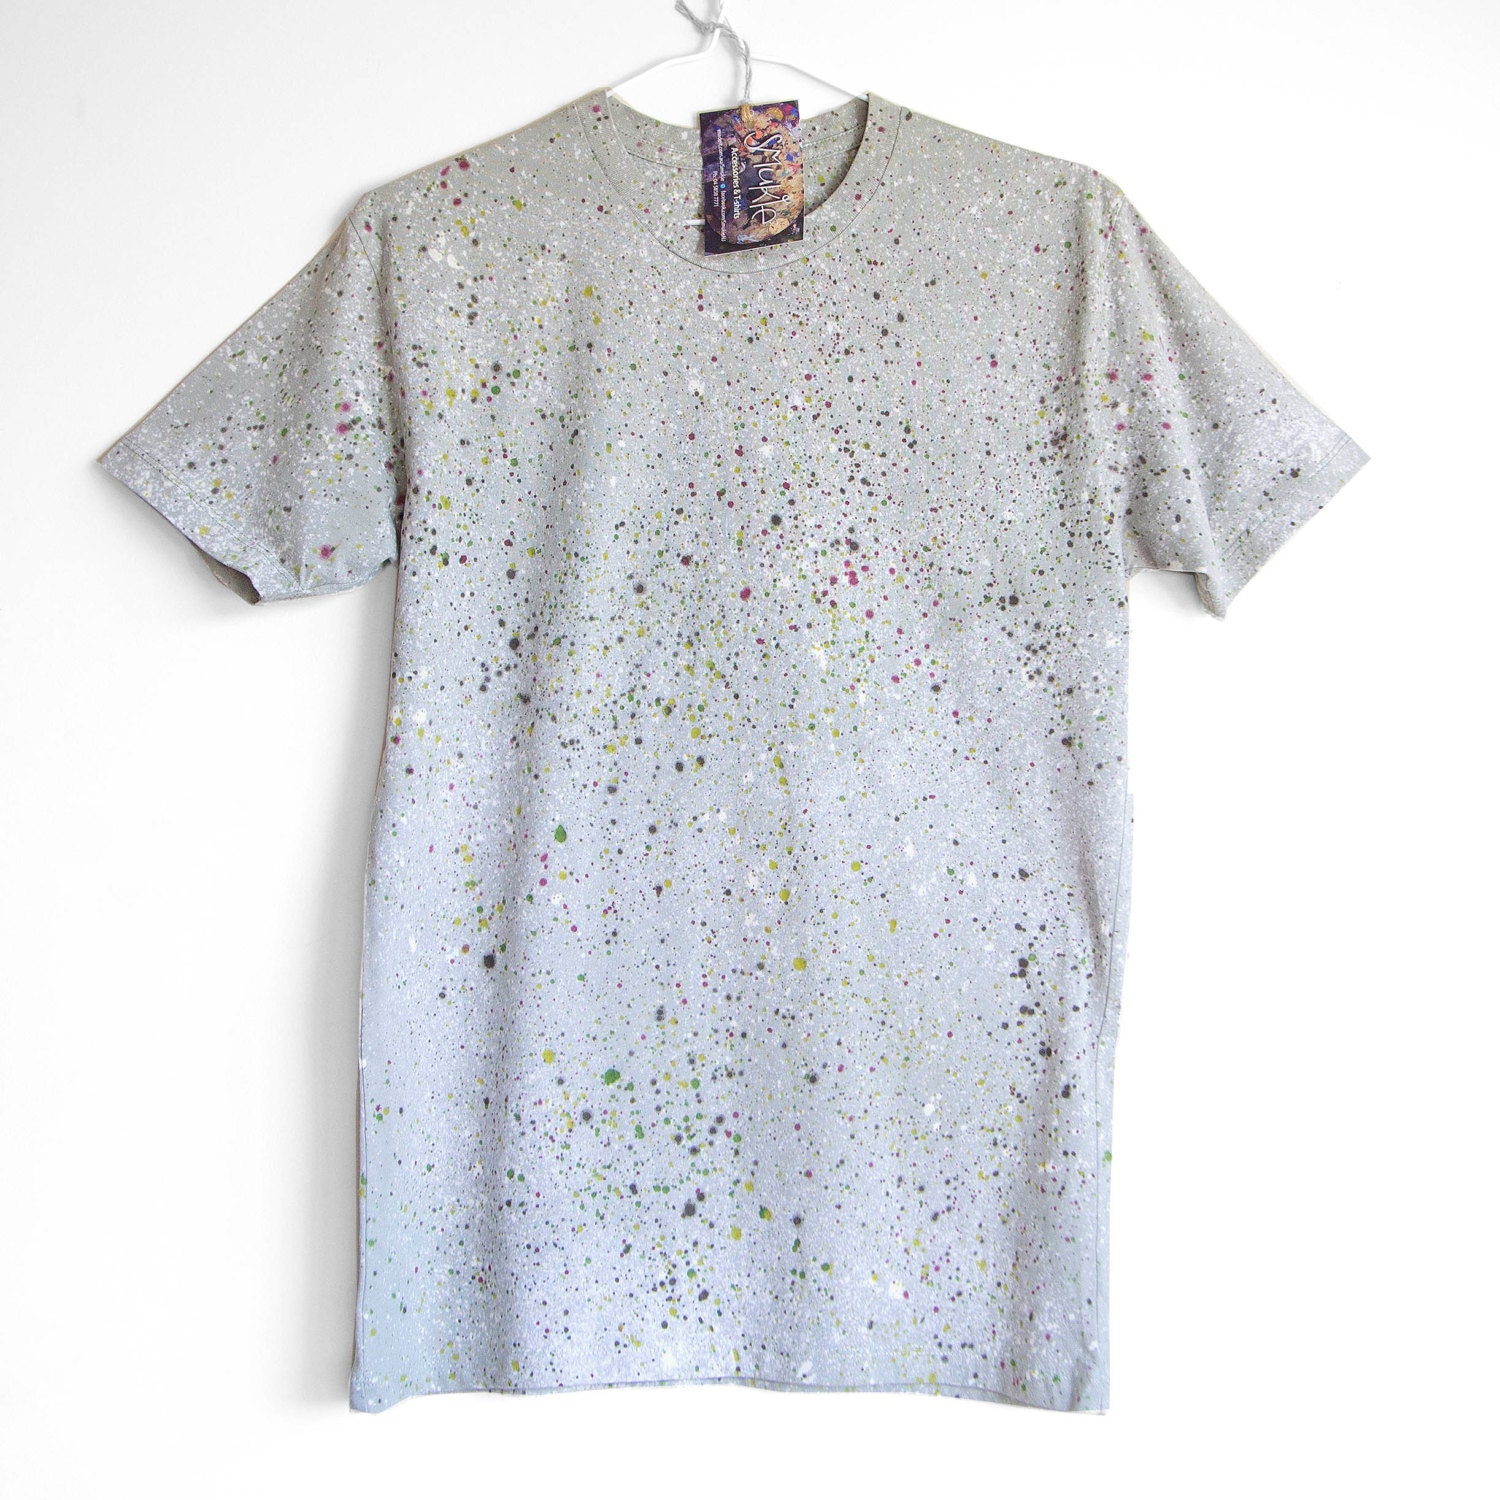 Natural Speckle Tee 100 Organic Cotton Hand Dyed Tee